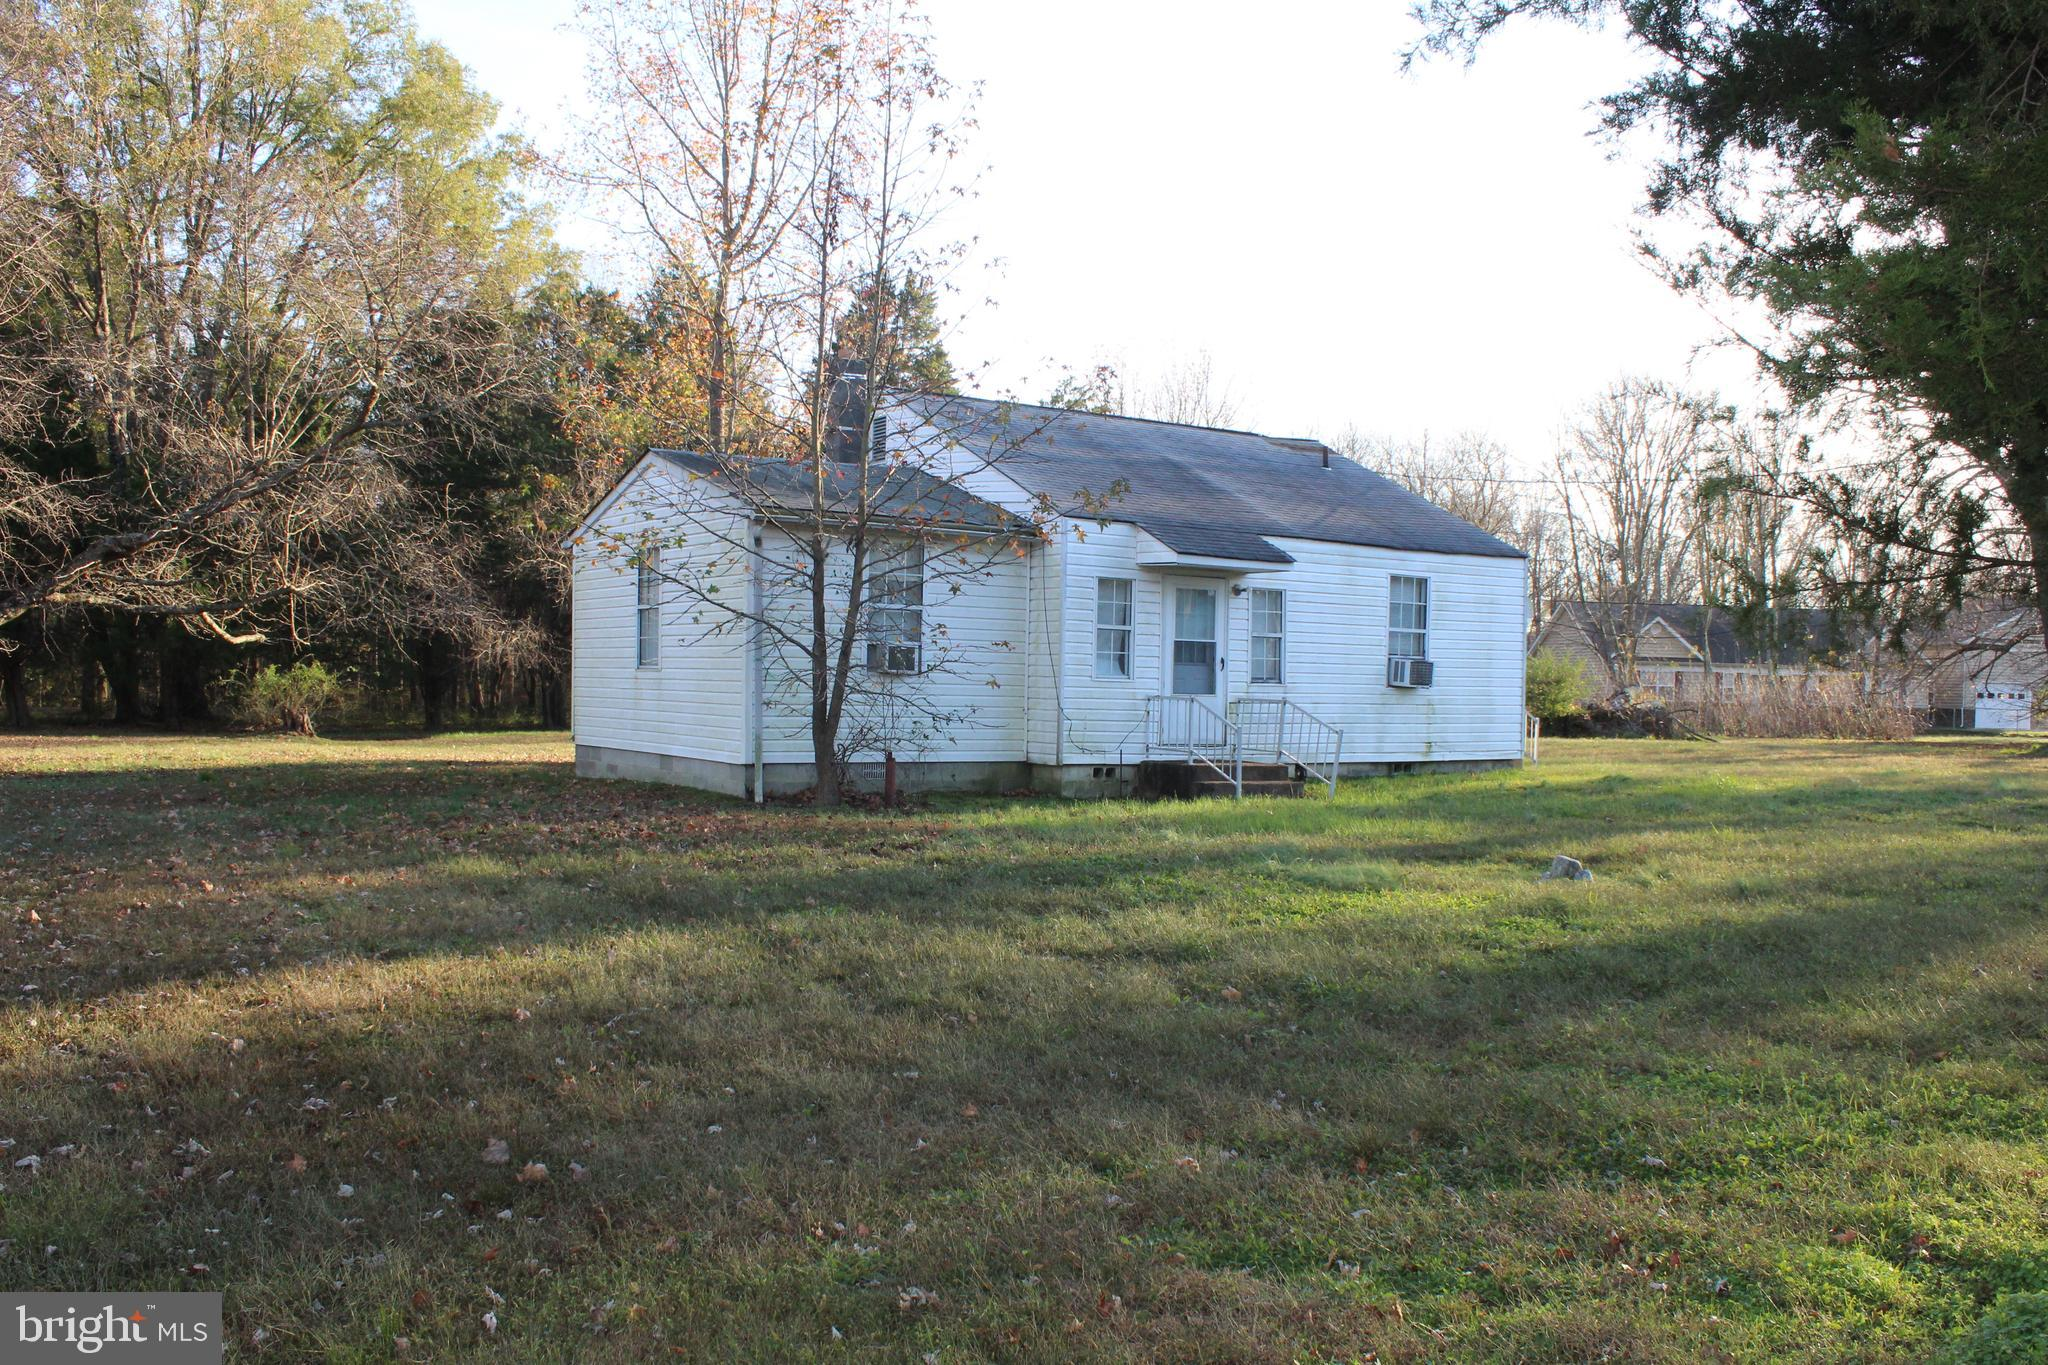 3 bed 2 bath fixer upper located in the water oriented community of Mill Point Shores.  This propert